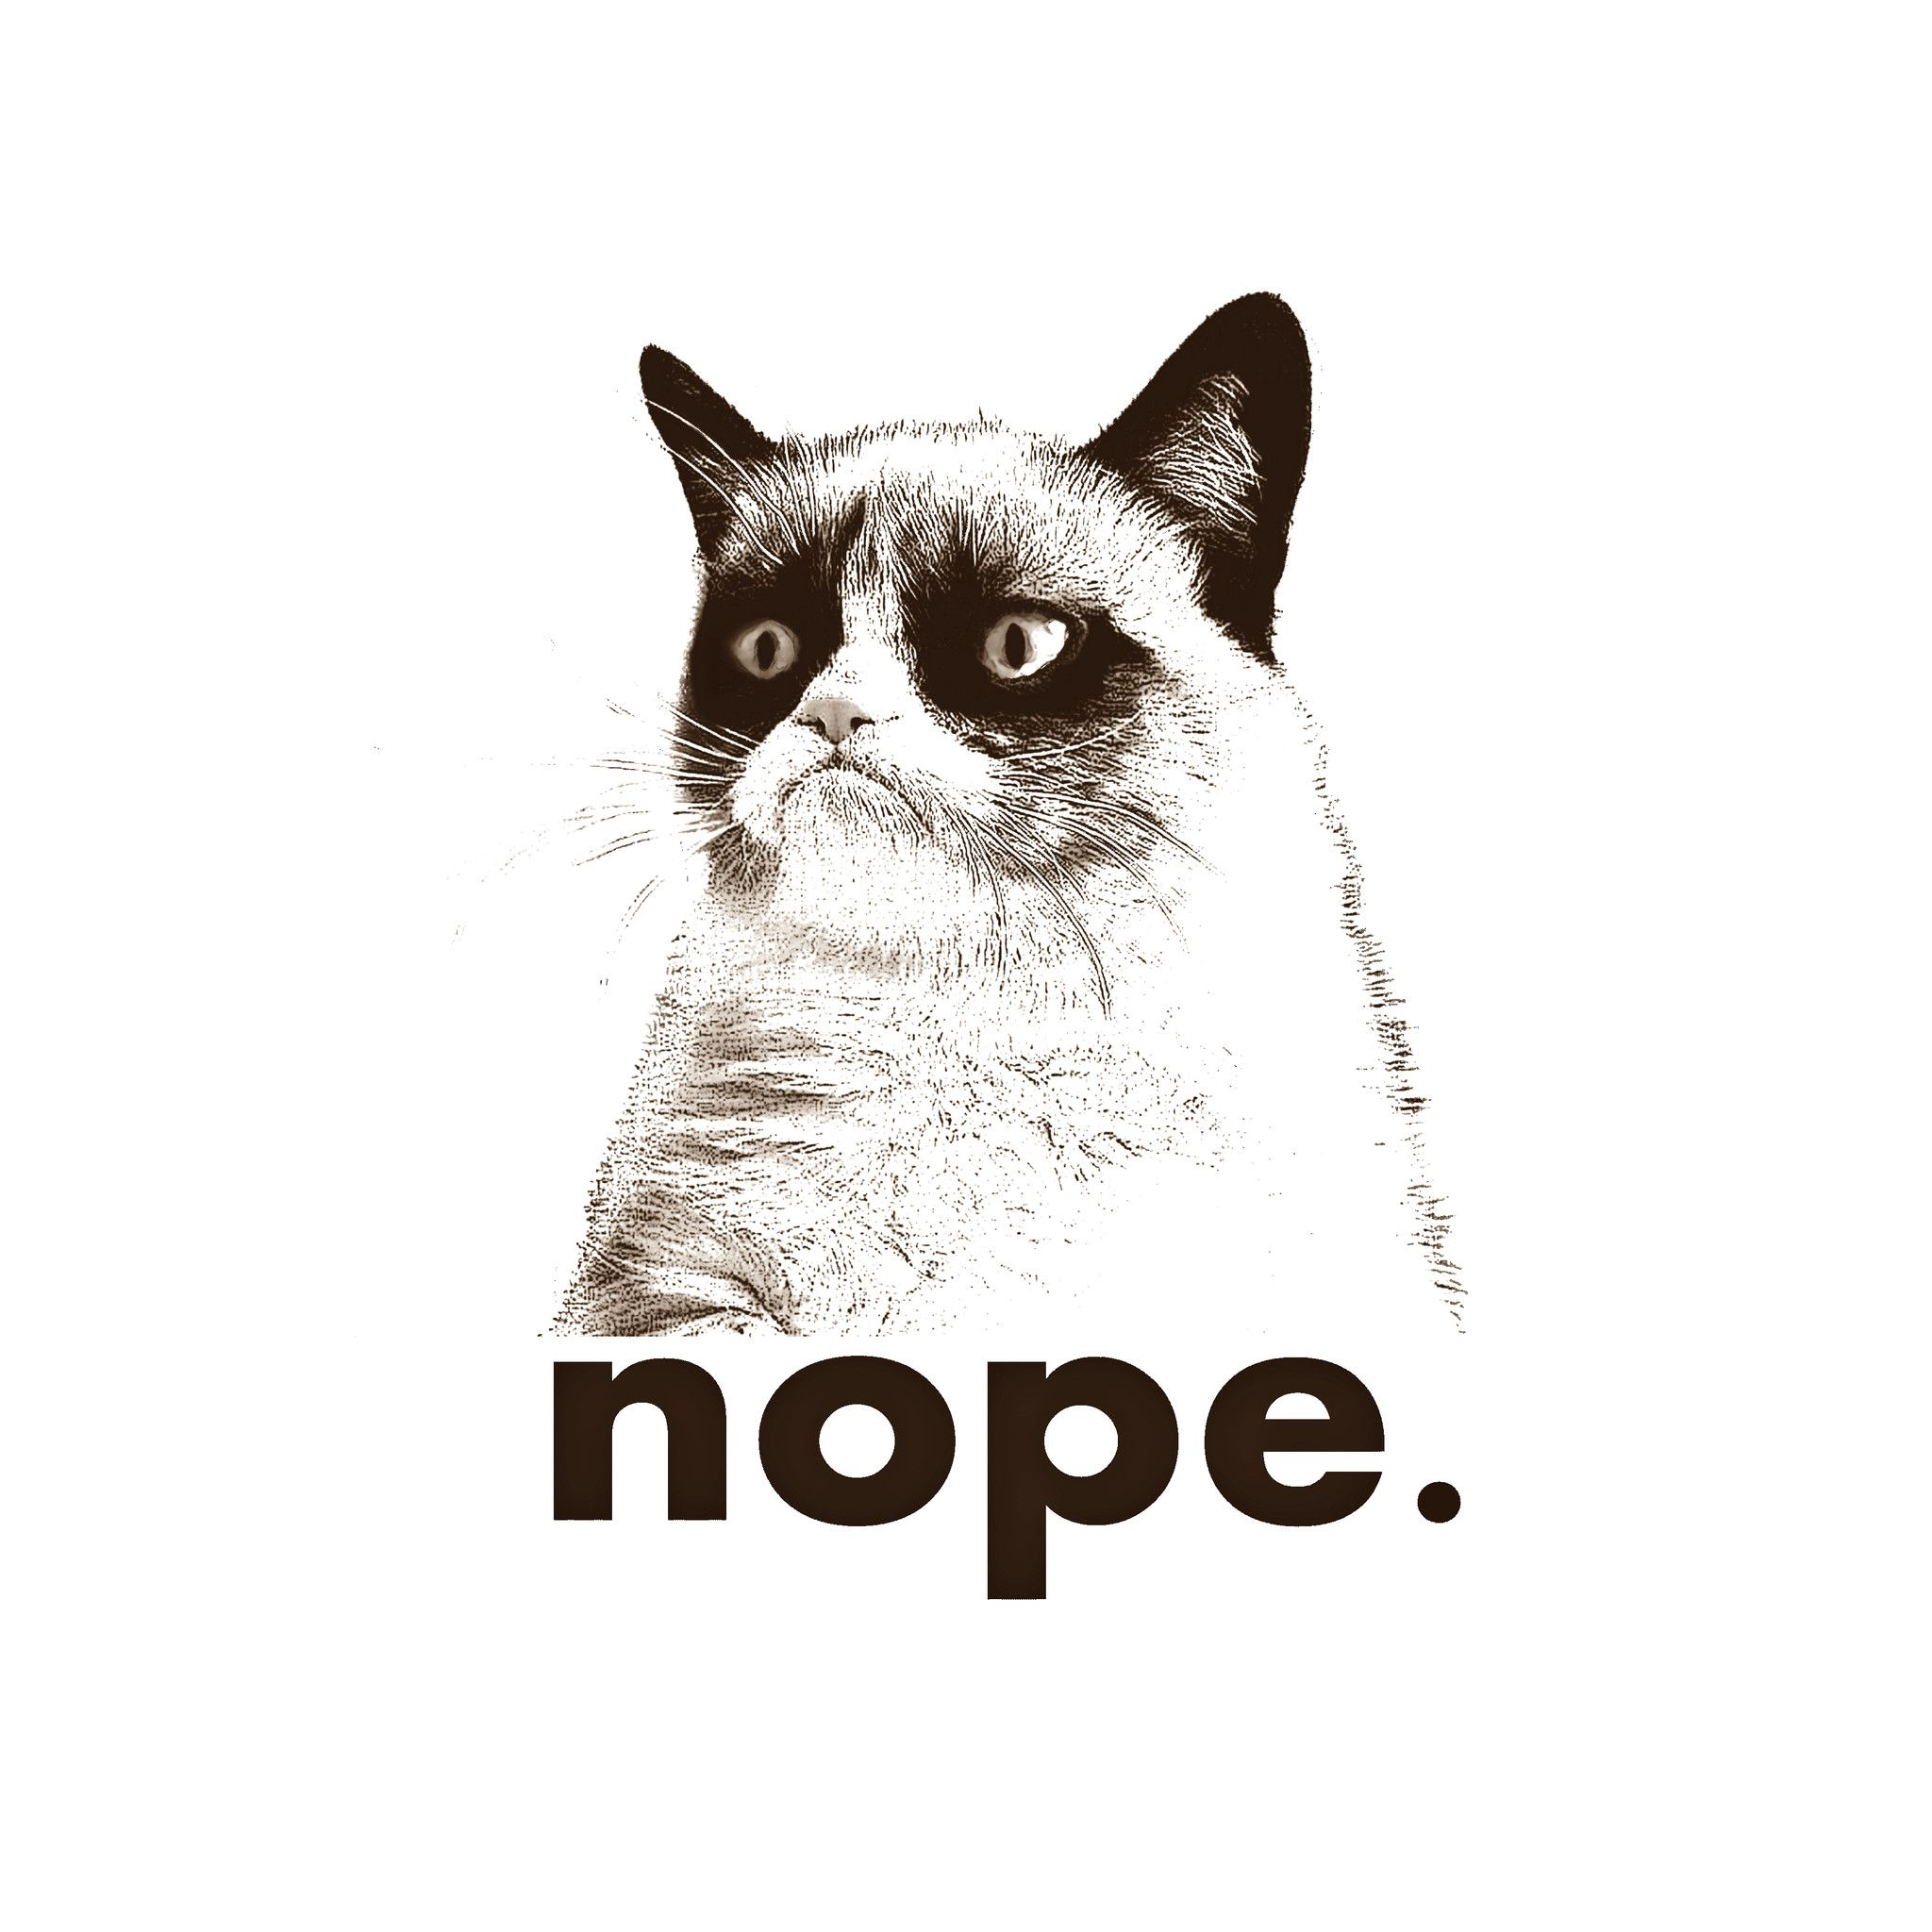 Free Grumpy Cat Wallpaper Tumblr